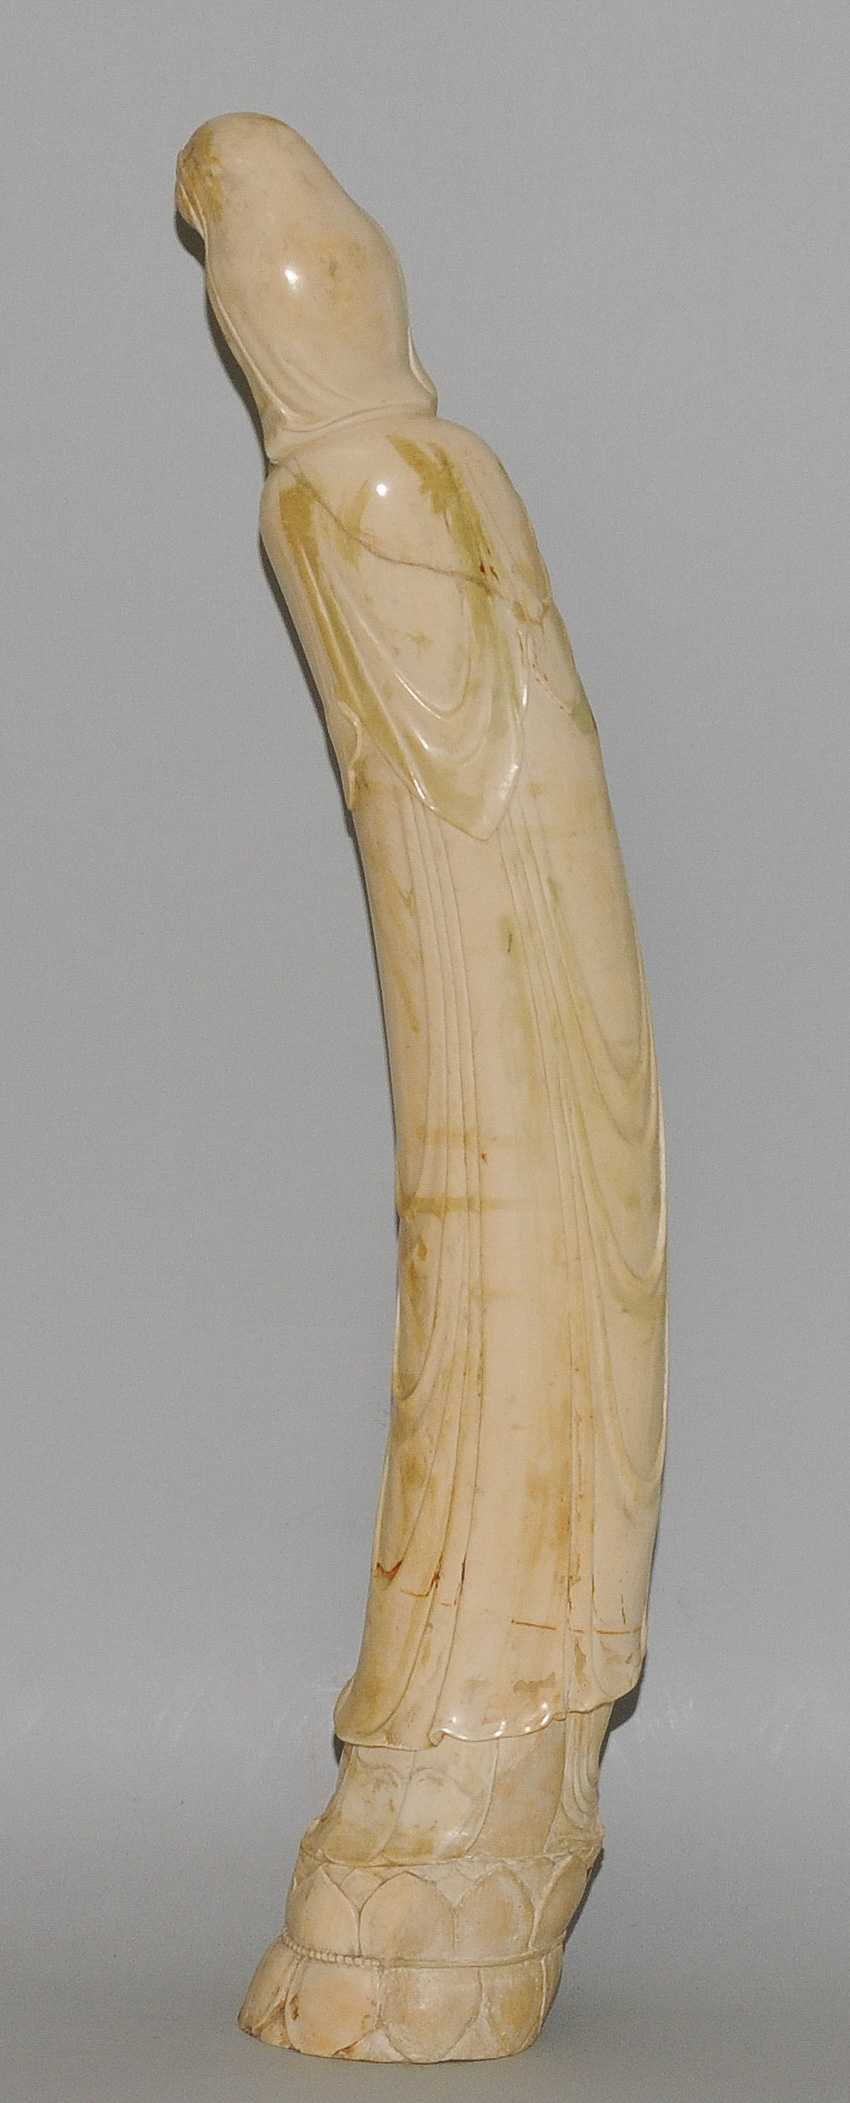 A Large Ivory Figure - photo 7